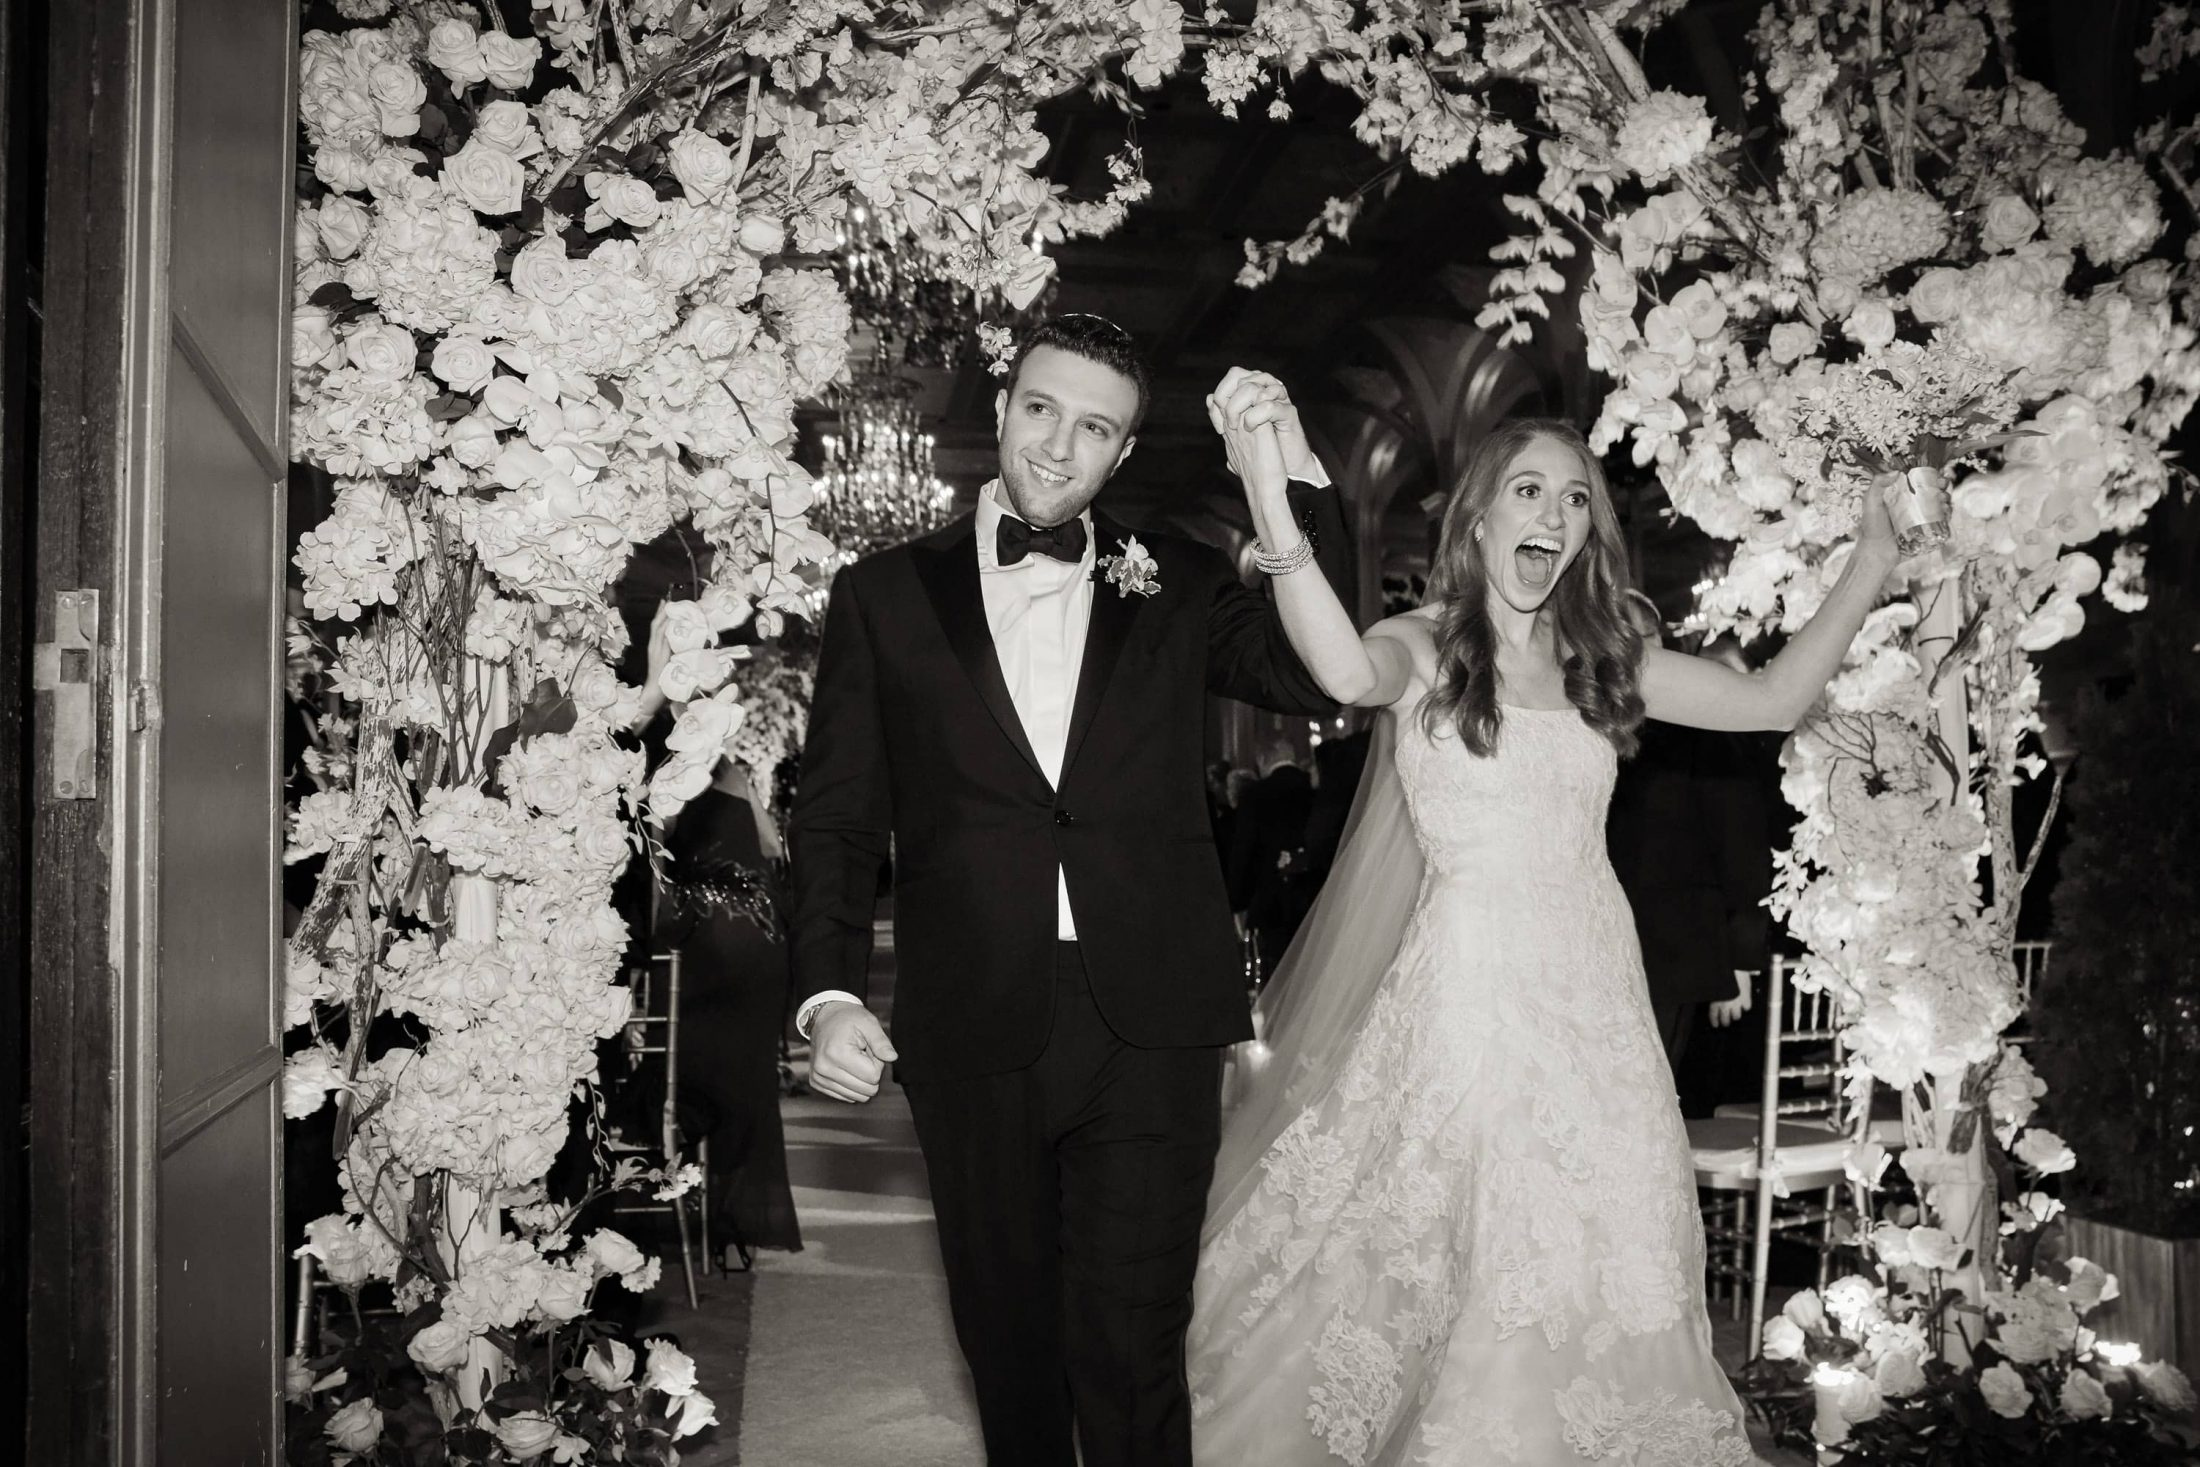 Newlyweds under floral arch designed by Ed Libby at this classic autumn wedding at The Plaza in NYC | Photo by Christian Oth Studio